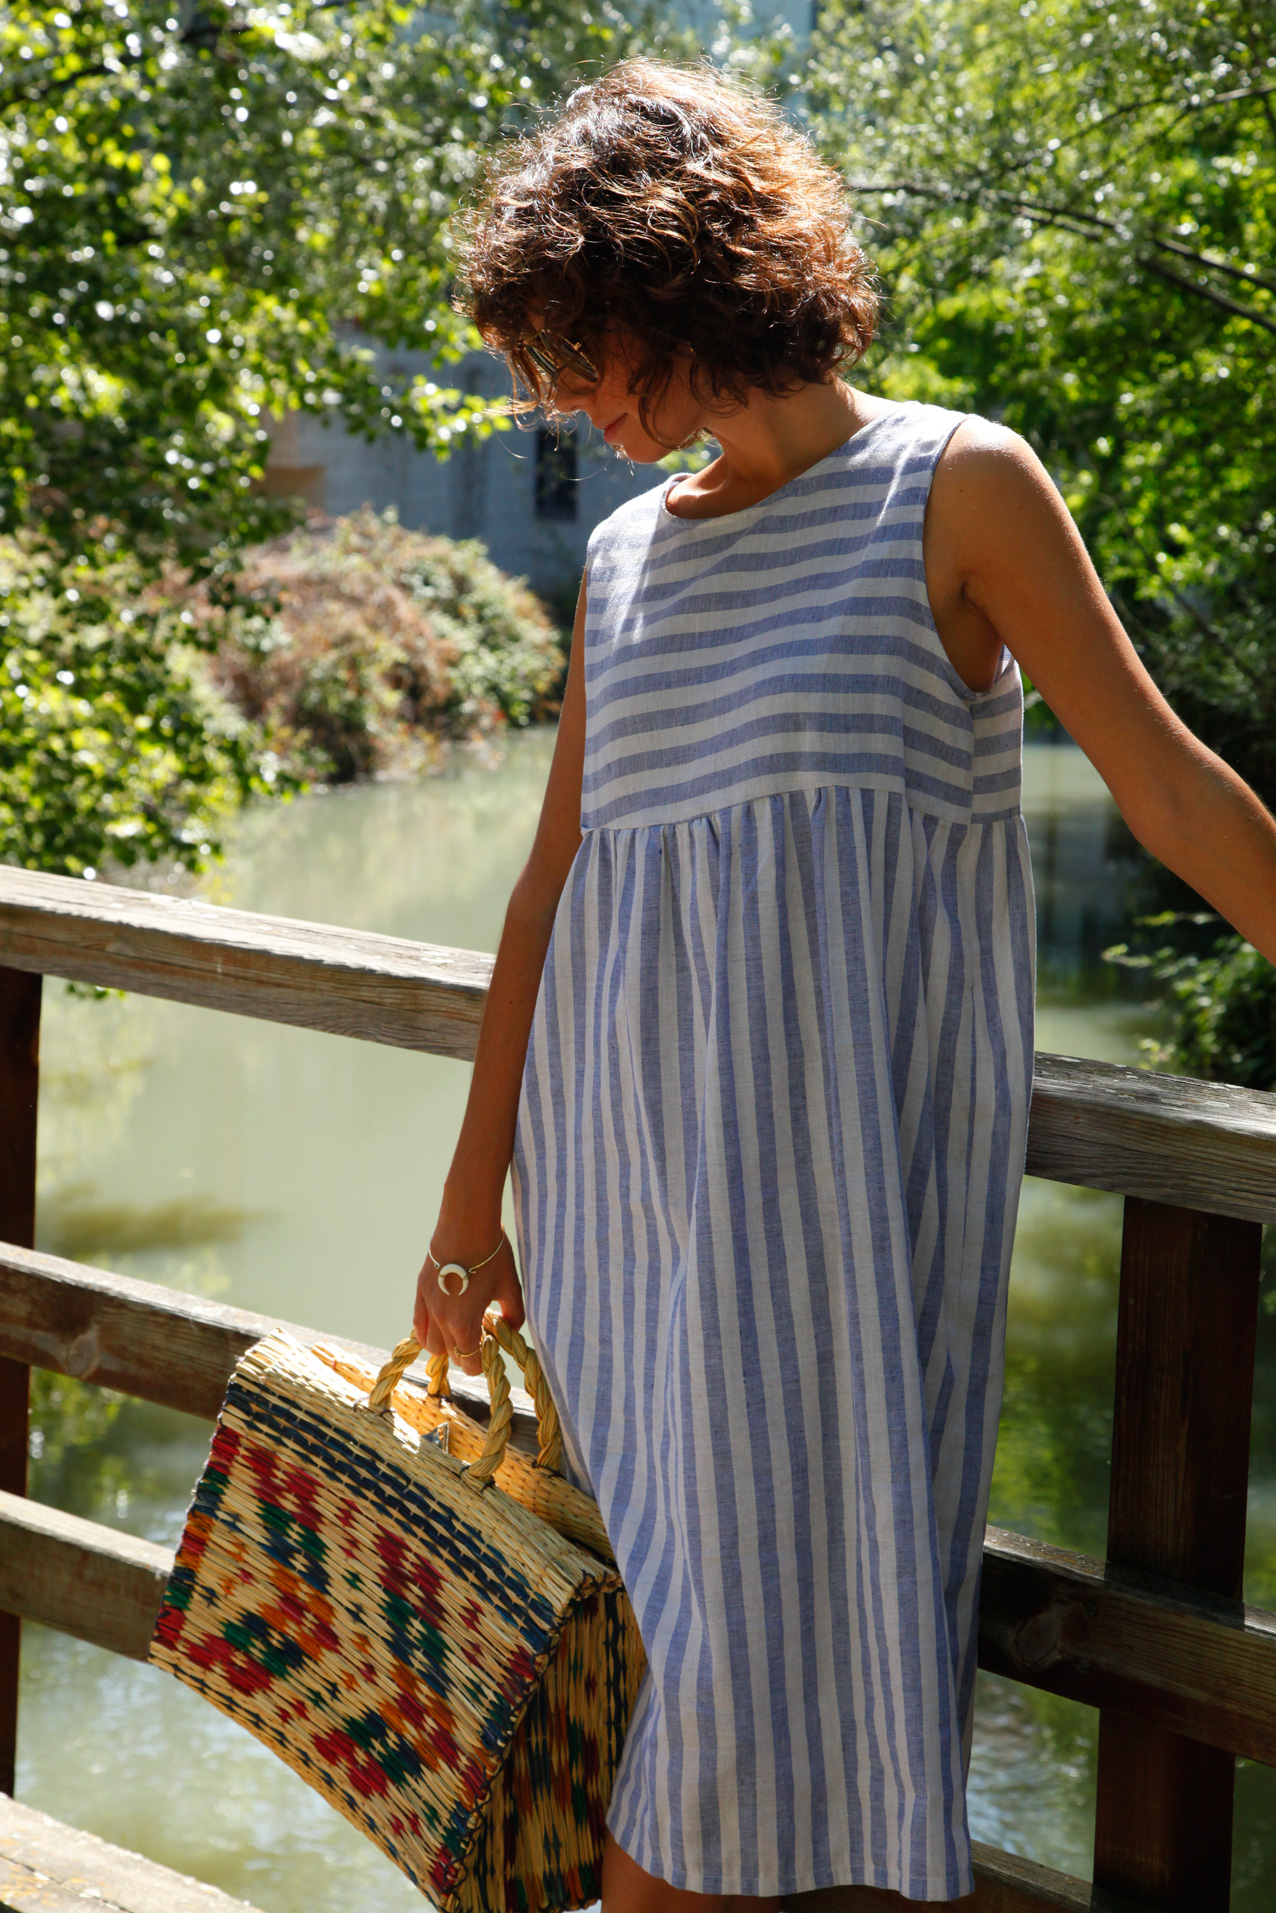 blue_popelina-stripped_dress_linen_capazo-it_bag-cool_lemonade-streetstyle